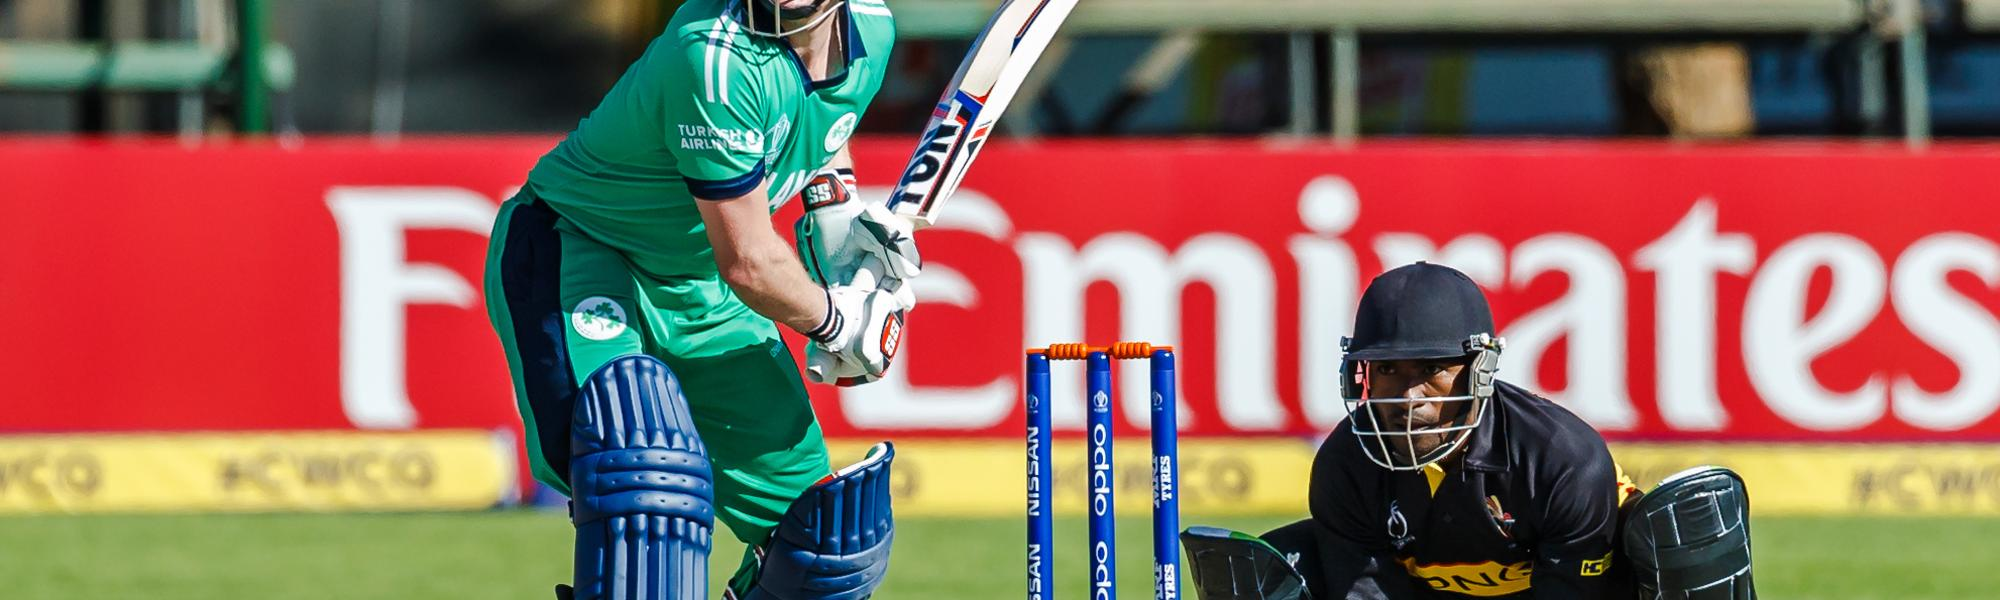 Ireland captain William Porterfield in action during a Group A World Cup Qualifier cricket match between Papua New Guinea and Ireland at Harare Sports Club, March 6 2018 (©ICC).